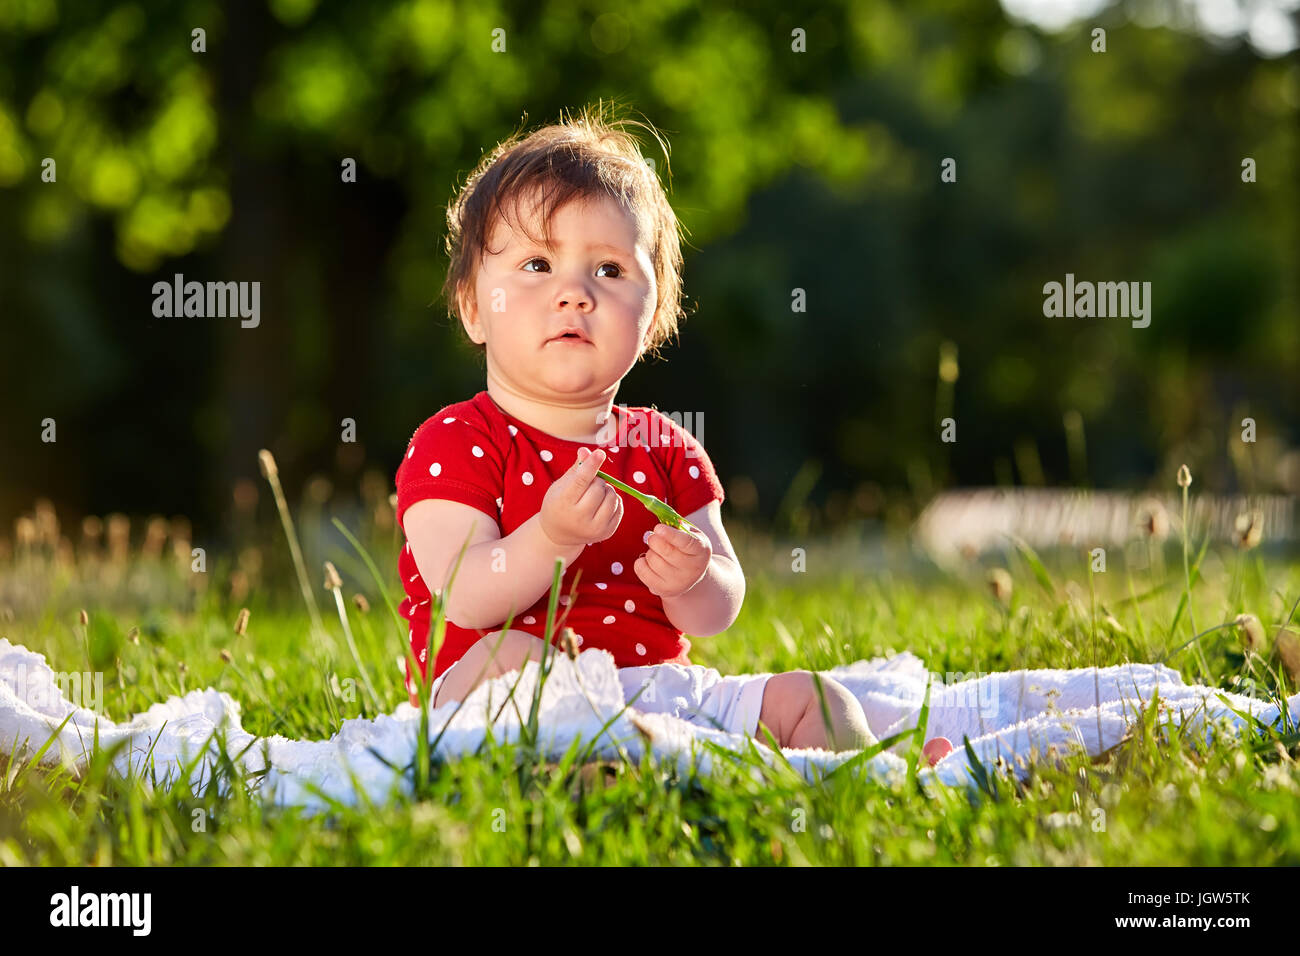 Image of: Desktop Cute Adorable Nice Baby Girl In Red Spring Dress Smiling Sitting Under The Tree Baby Sitting On Grass In The Park Alamy Cute Adorable Nice Baby Girl In Red Spring Dress Smiling Sitting